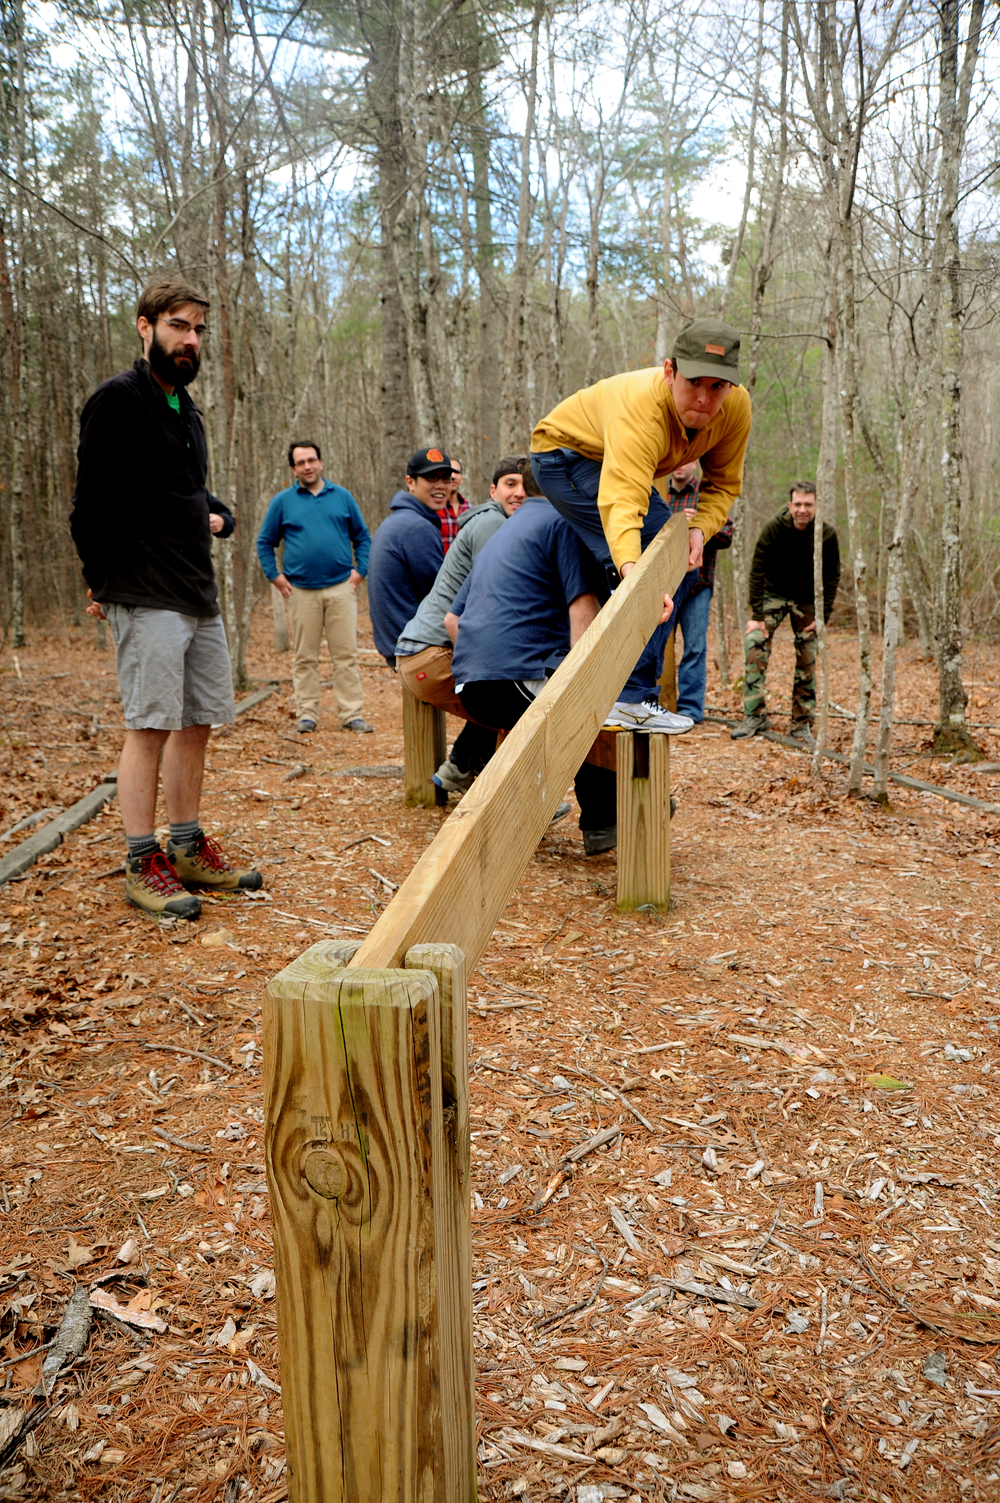 Teambuilding And Low Elements Course Wilderness